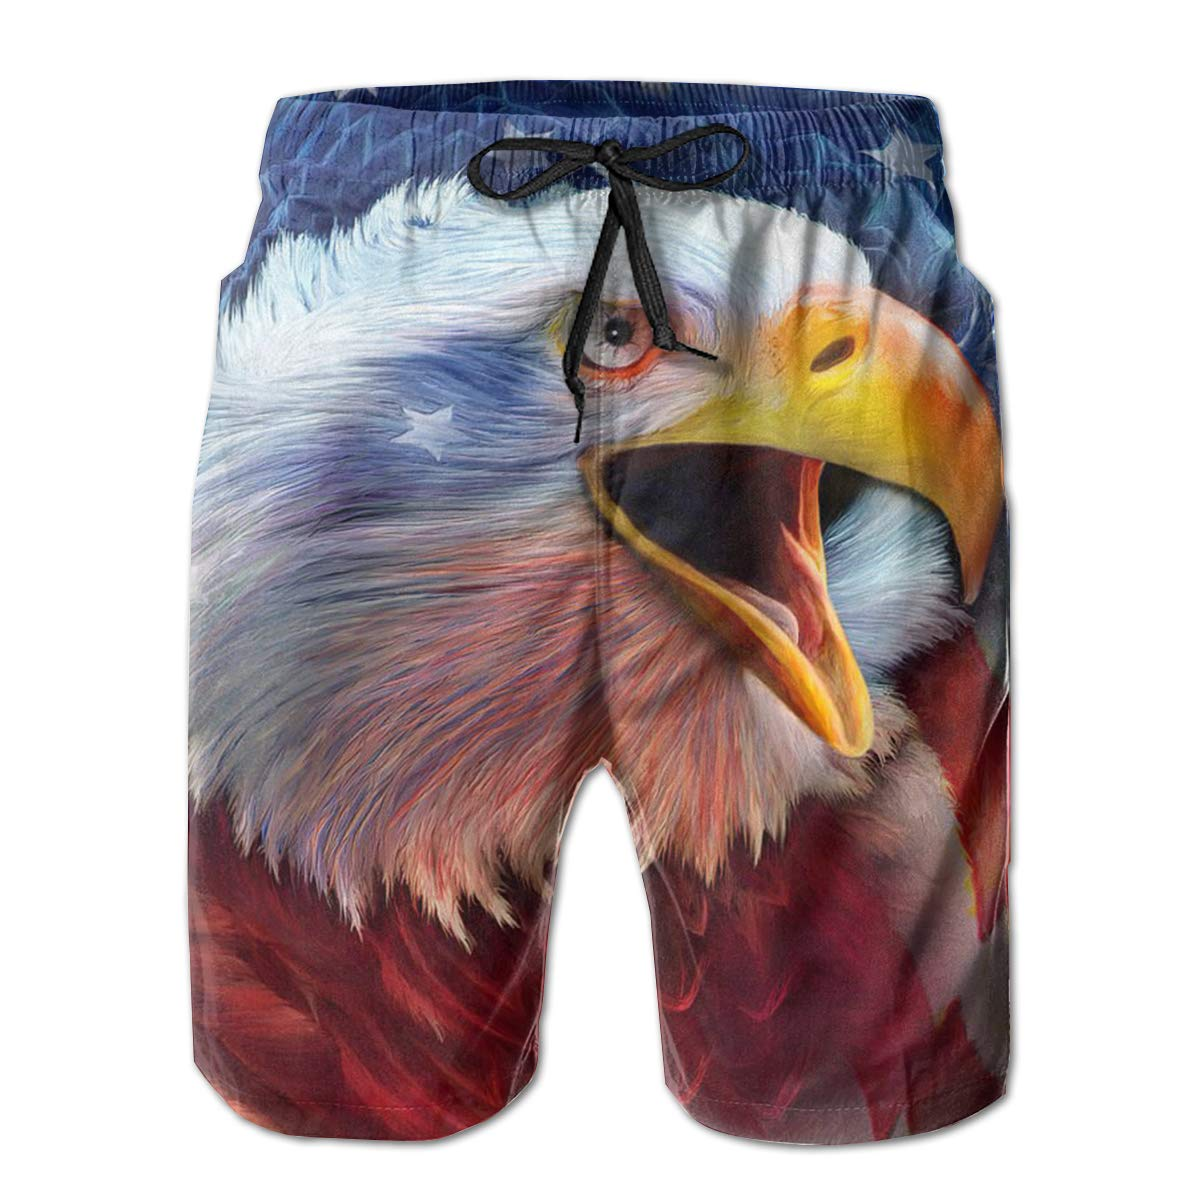 American Bald Eagle Mens Summer Casual Swim Trunks Shorts Quick Dry Swim Trunks with Pockets